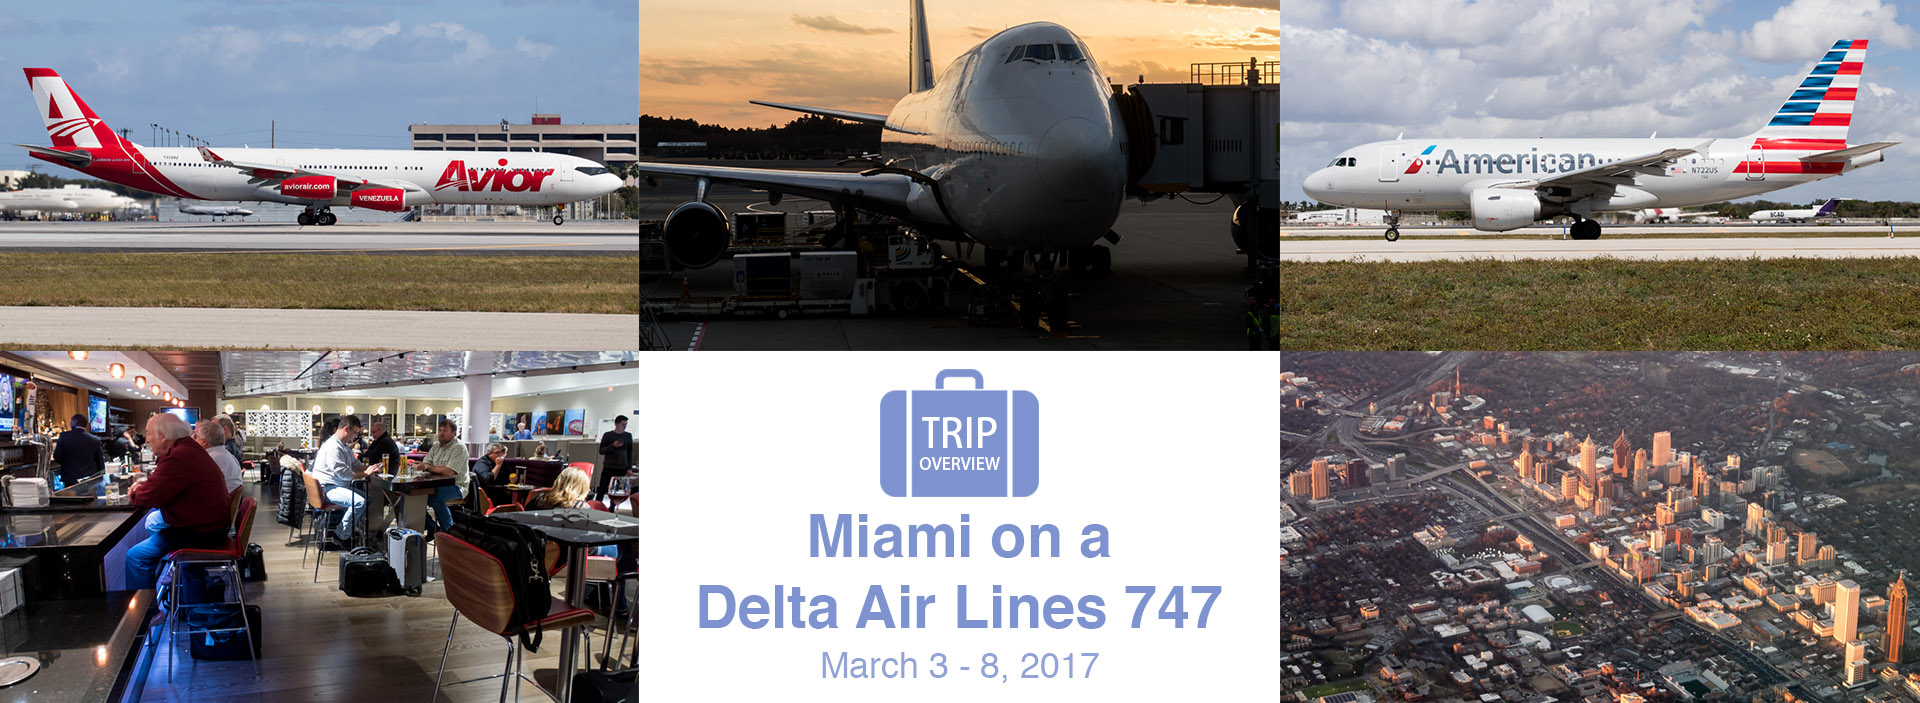 Trip Overview: Miami Spotting Trip on a Delta Air Lines 747